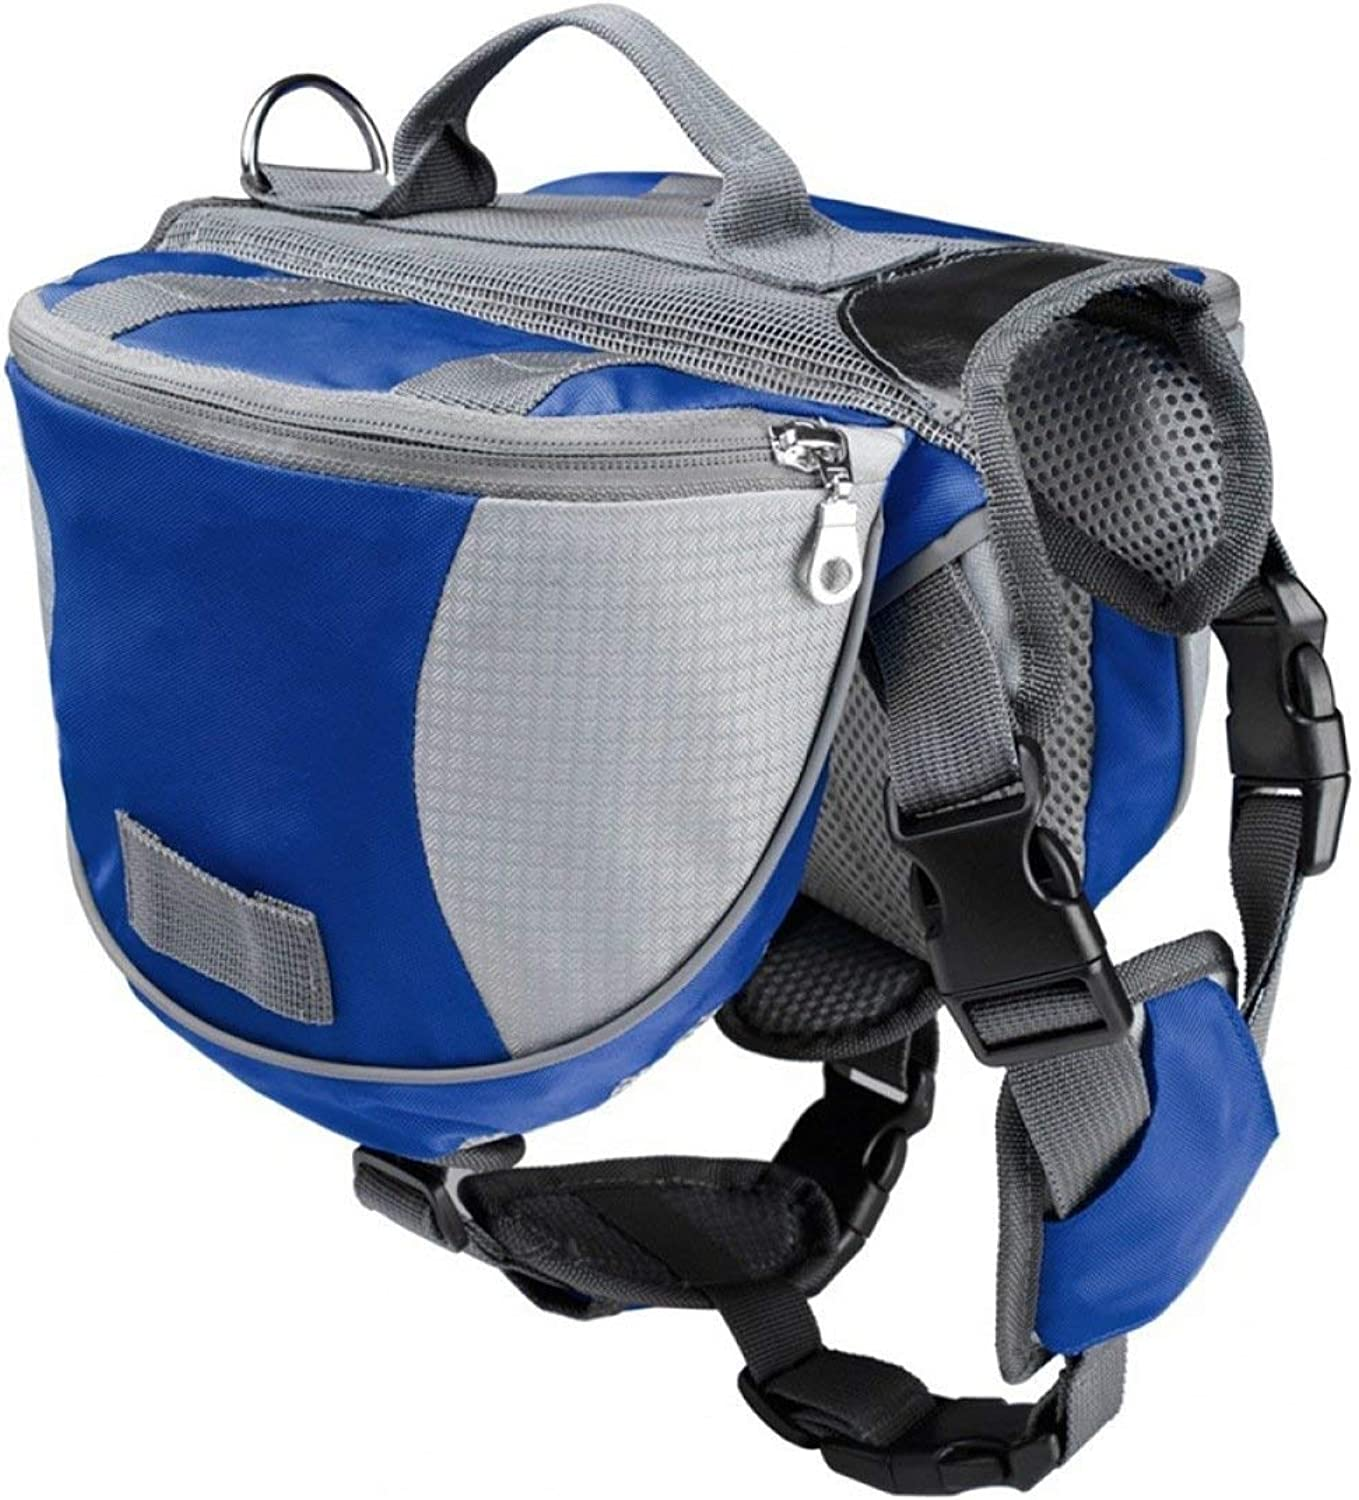 BeTti Pet Dog Carrying Bag from Backpack to Go Out Portable Backpack Small Medium Large Dog Husky golden Pet Supplies (color   bluee, Size   Medium)